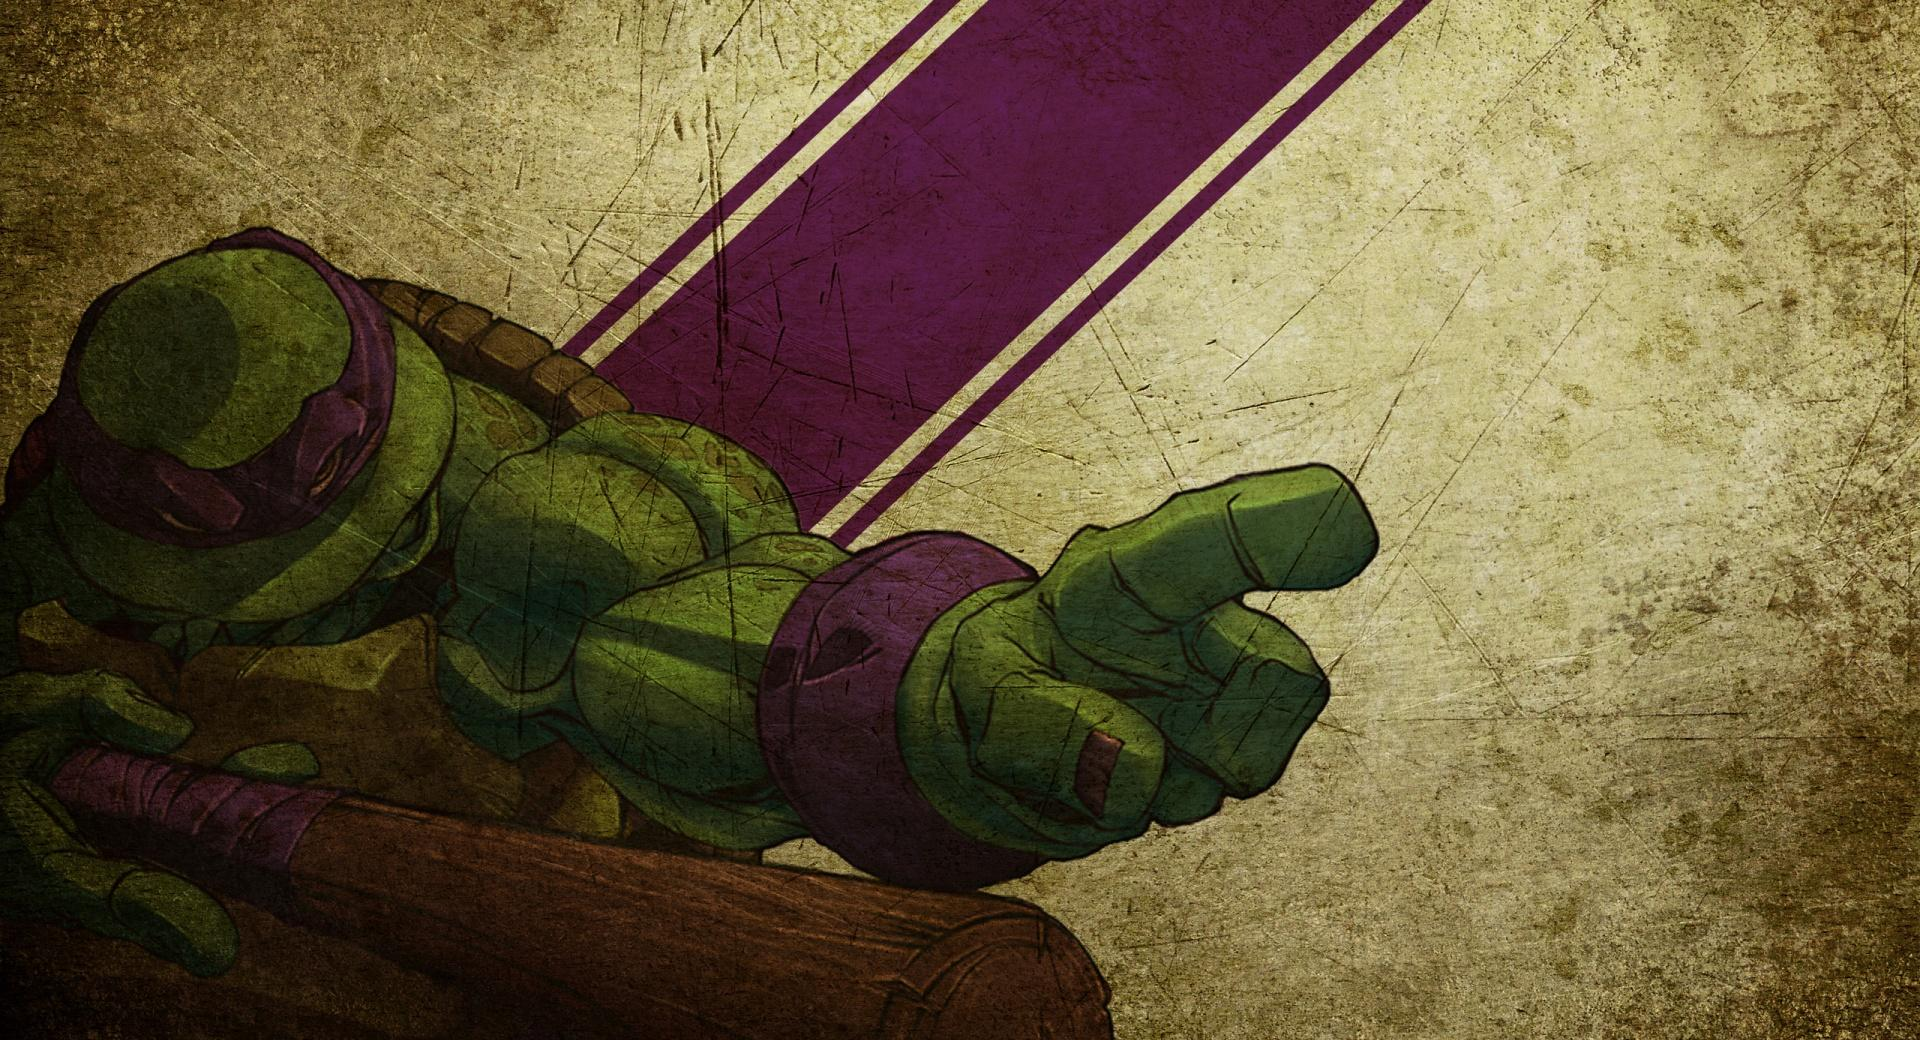 Donatello Teenage Mutant Ninja Turtles at 1024 x 1024 iPad size wallpapers HD quality